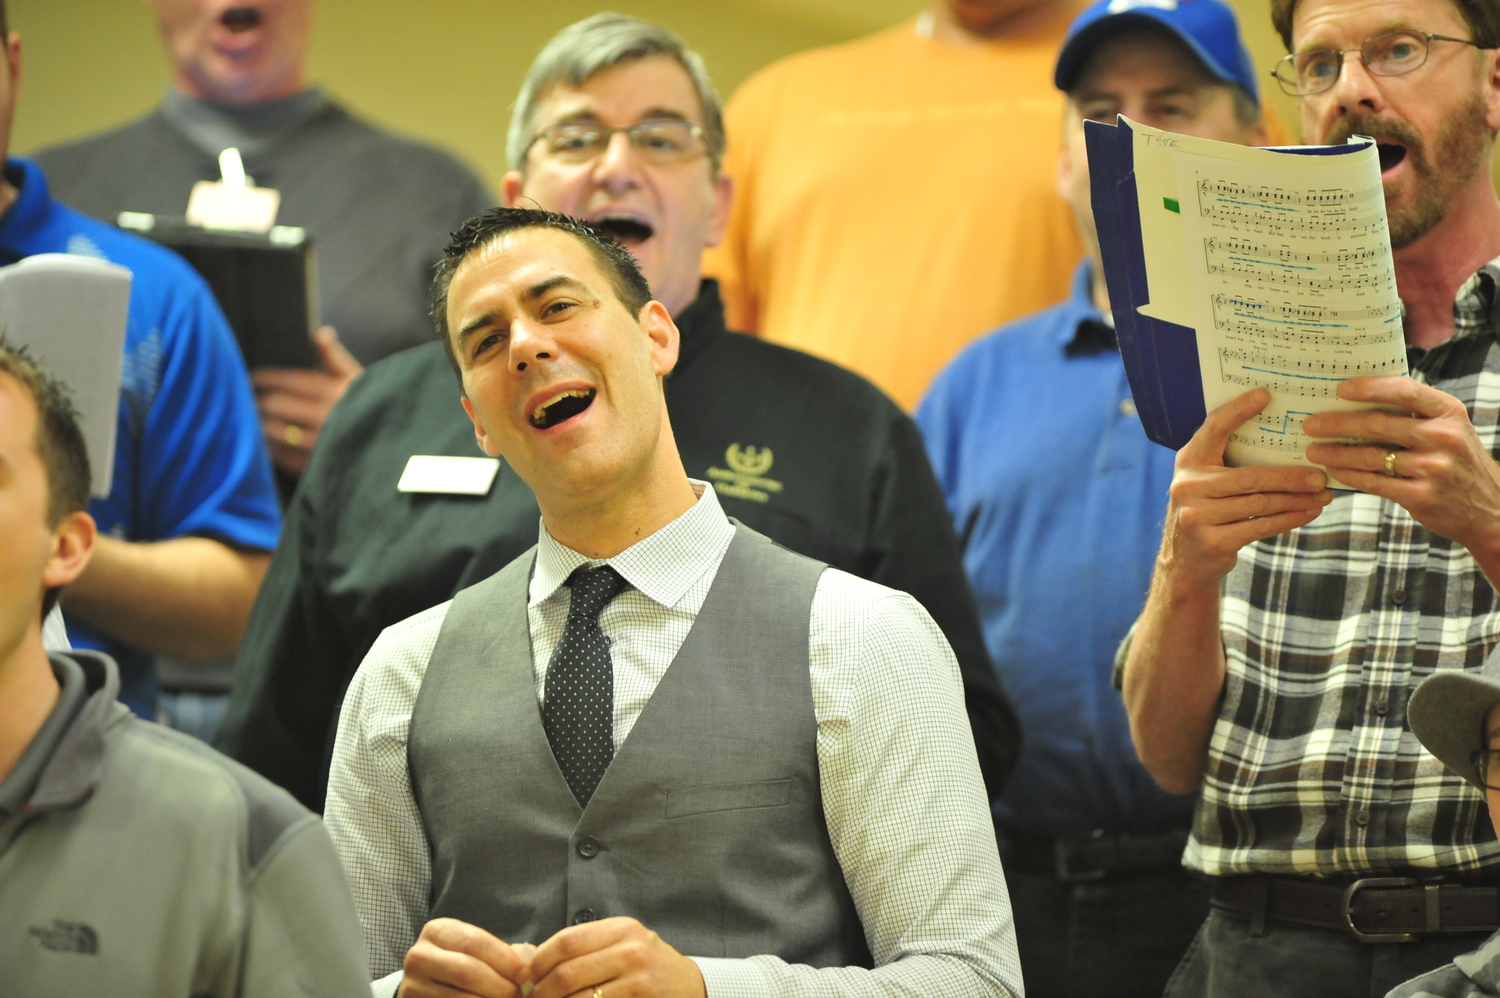 Gene Spilker, a baritone and tenor (yup!), presentation judge and member of the chorus' visual team, sings during a recent rehearsal. (Photo by Joel Currier)